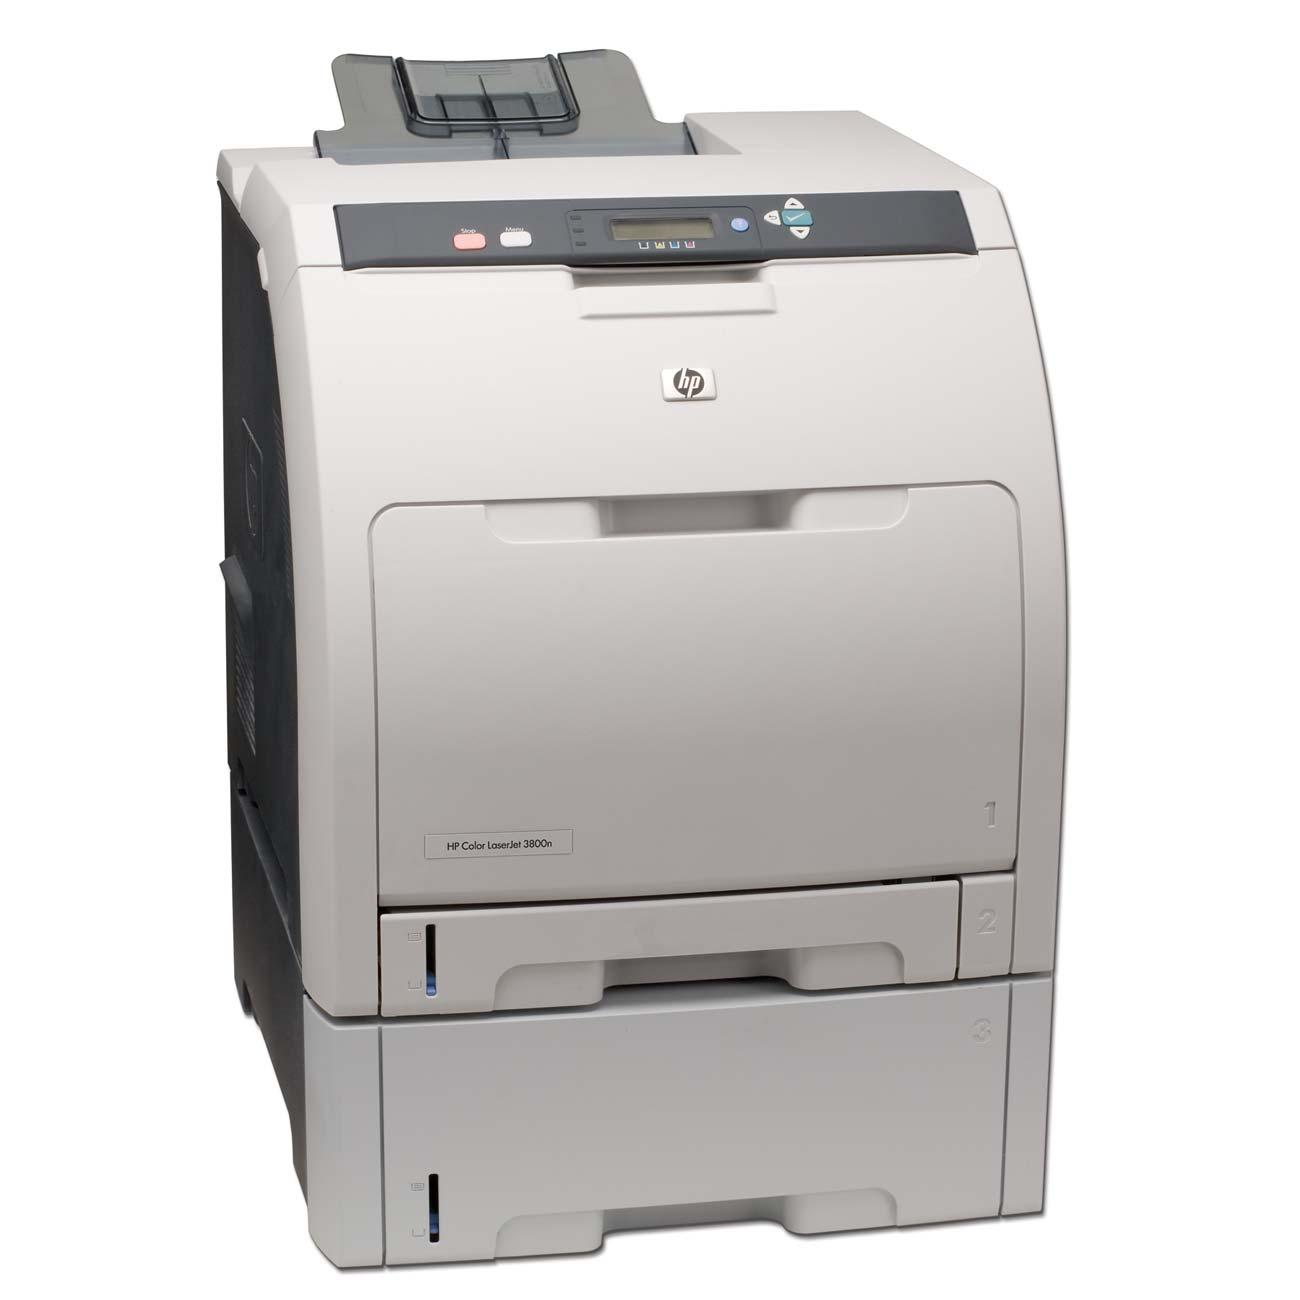 HP Color LaserJet 3800N Color Laser Printer 0